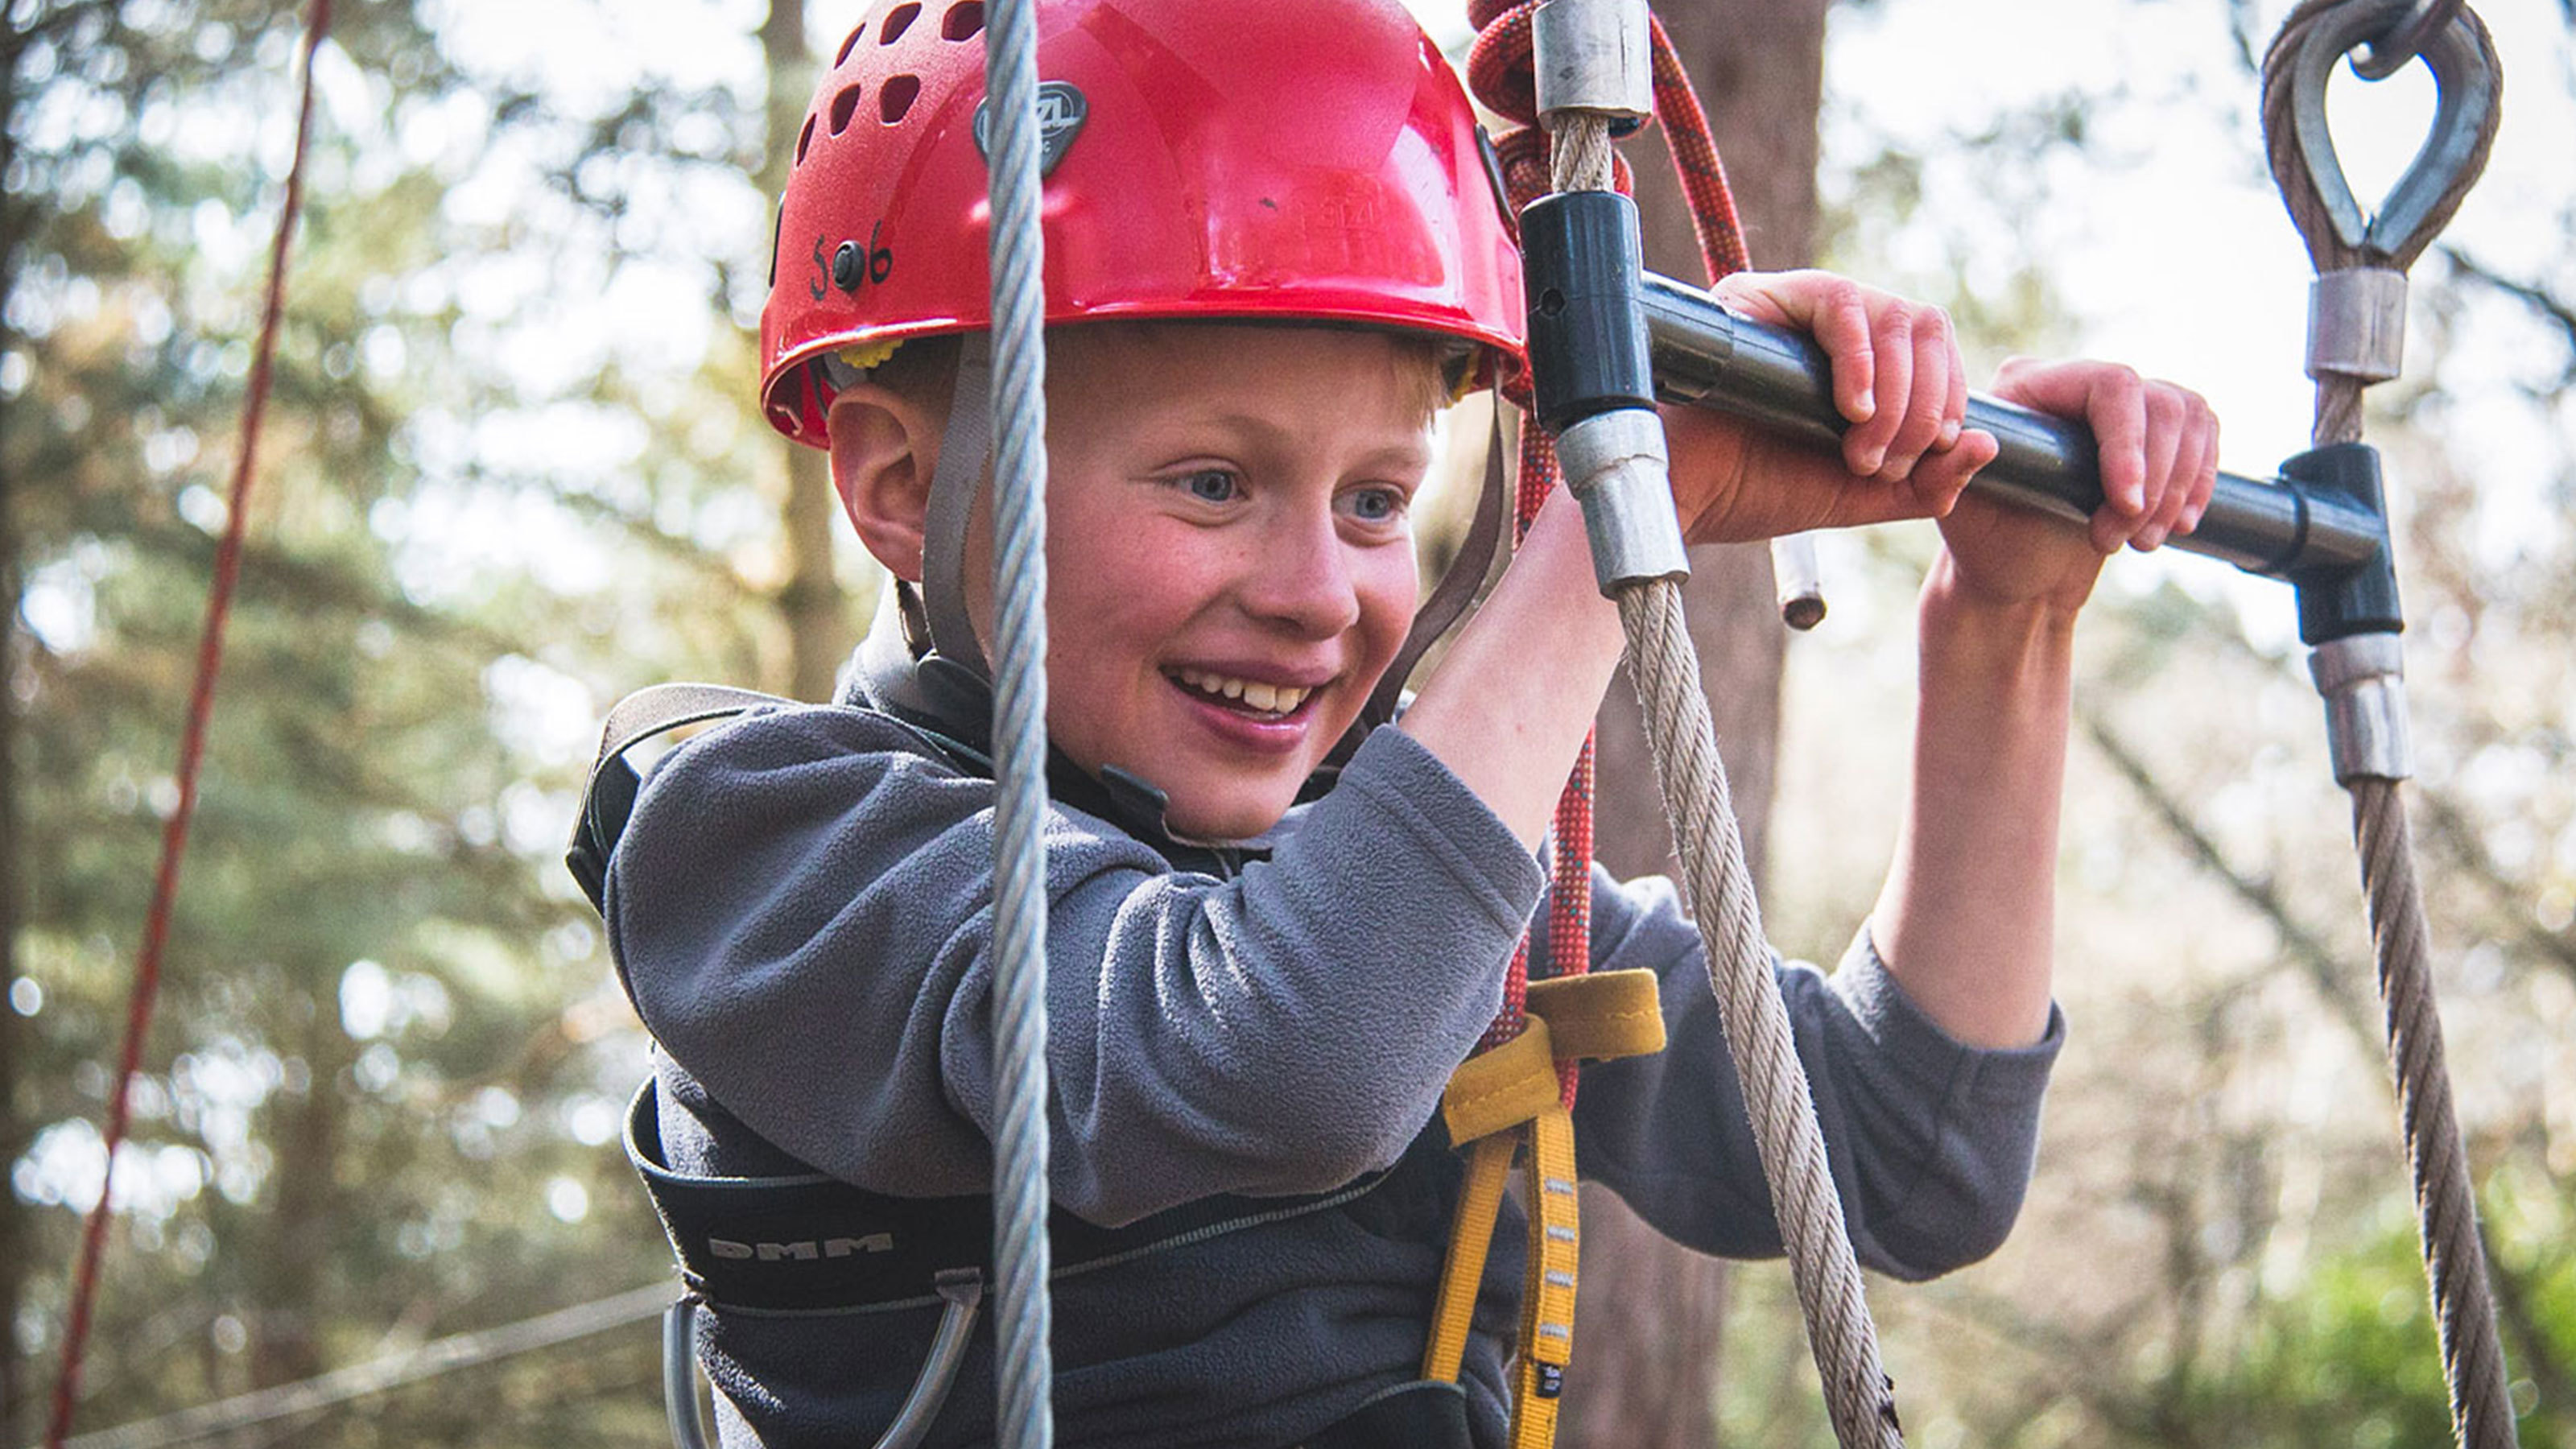 A young boy smiles on the High Ropes challenge